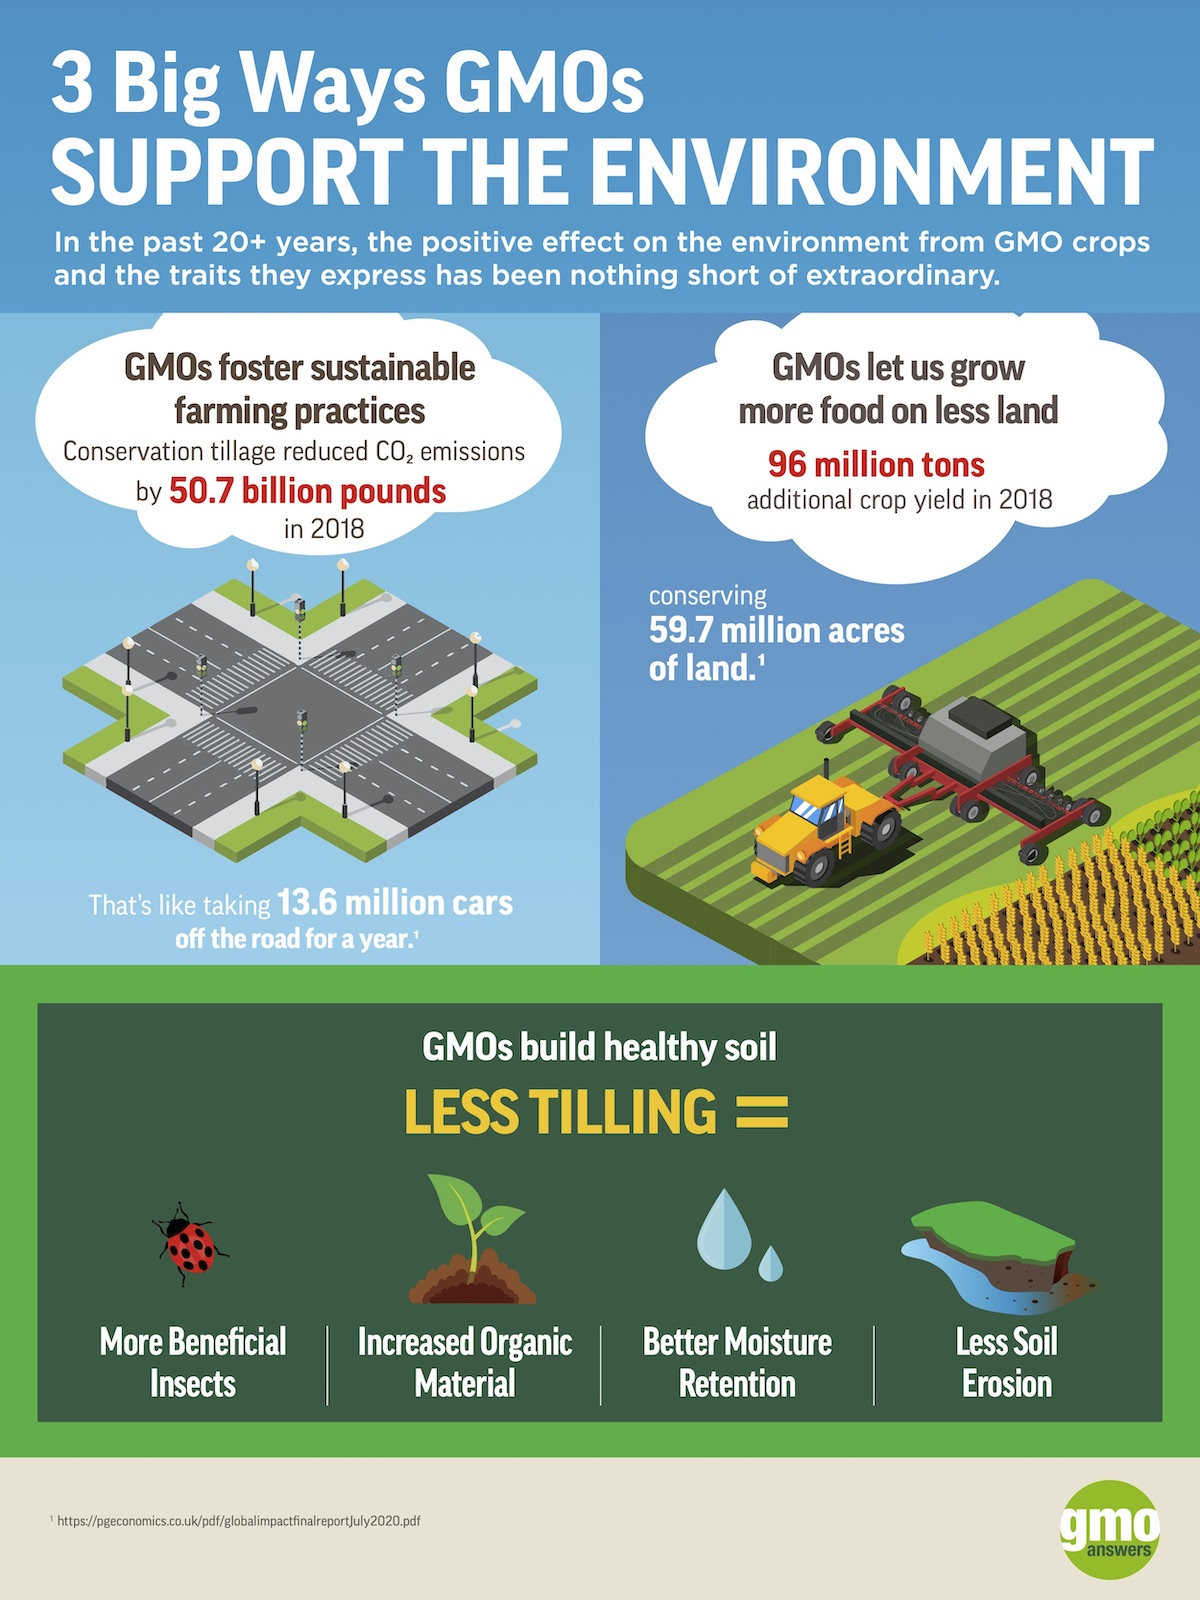 GMOs and climate change